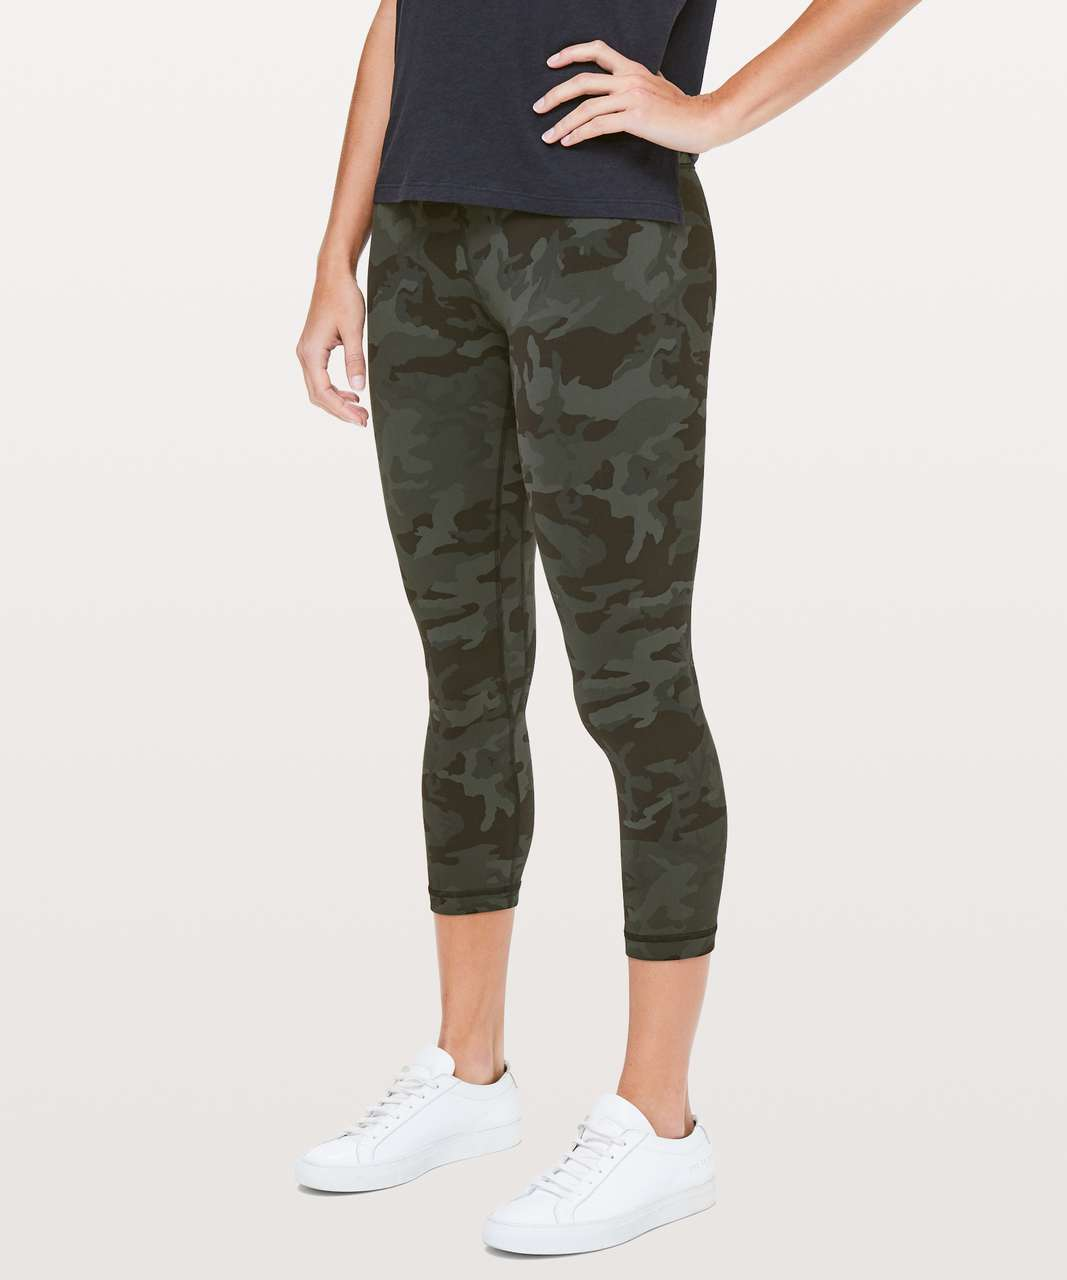 "Lululemon Align Crop *21"" - Incognito Camo Multi Gator Green (First Release)"